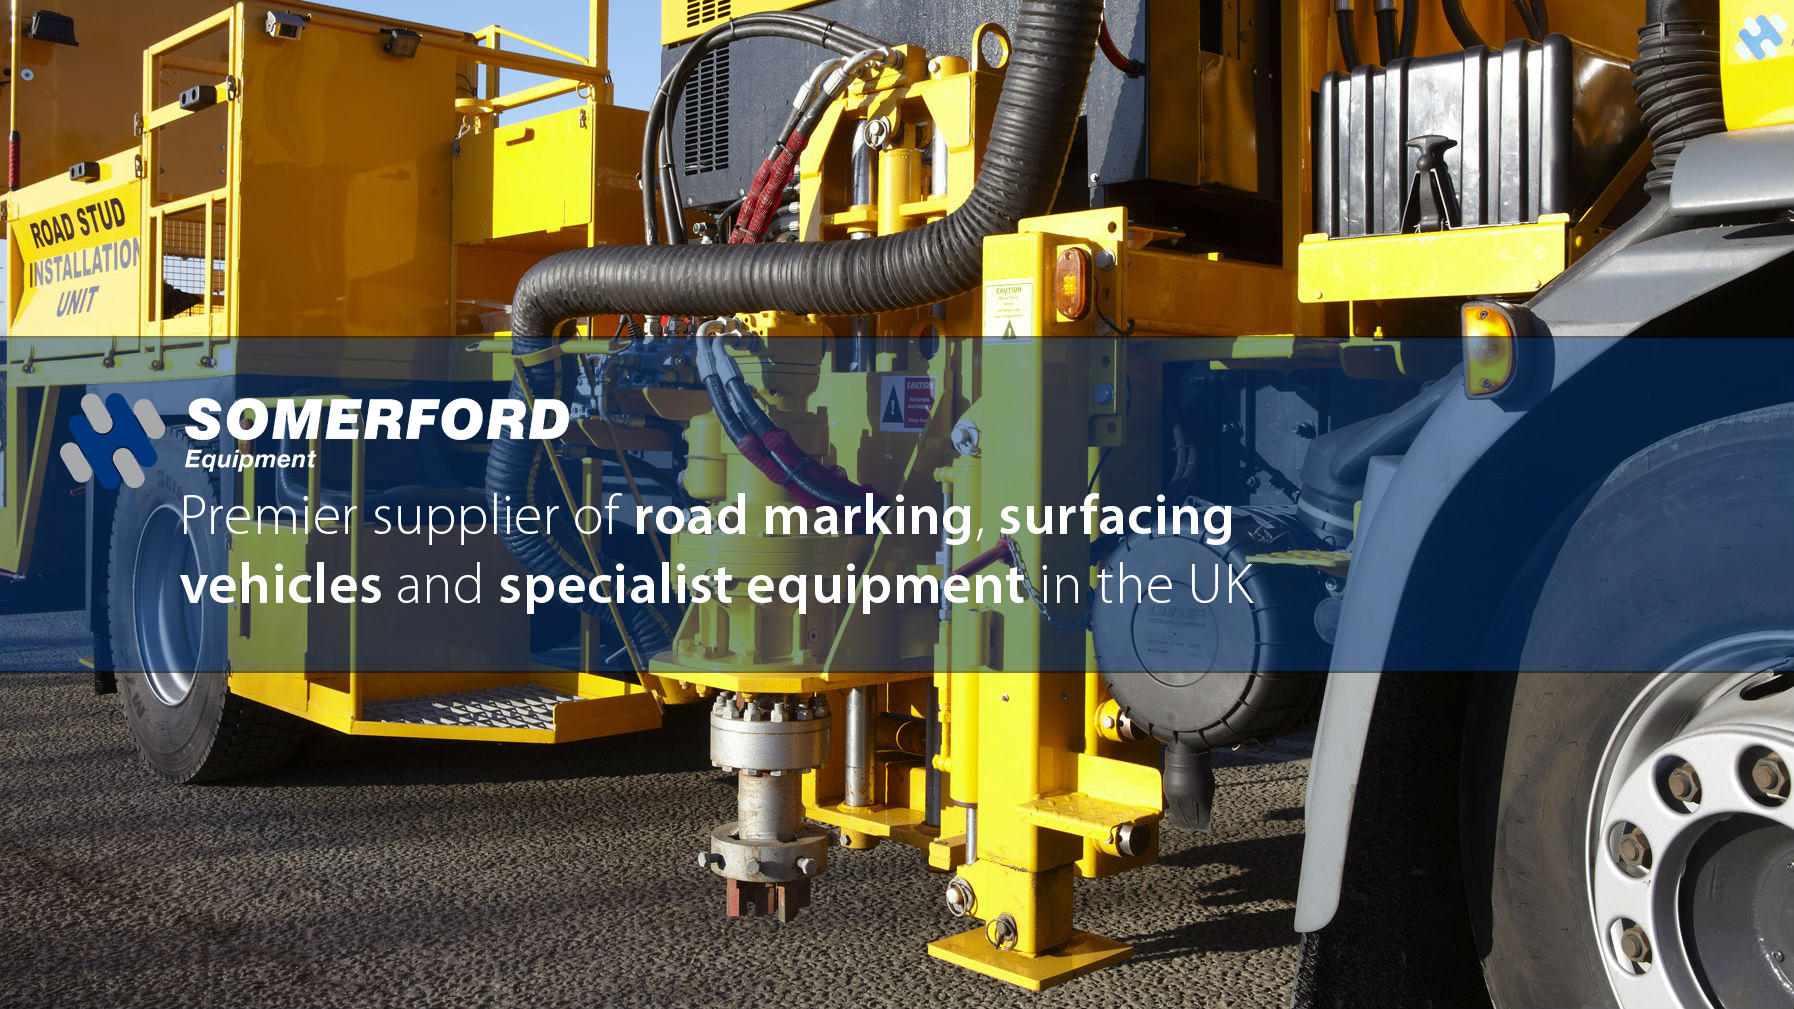 Somerford Road Marking Vehicles and Equipment